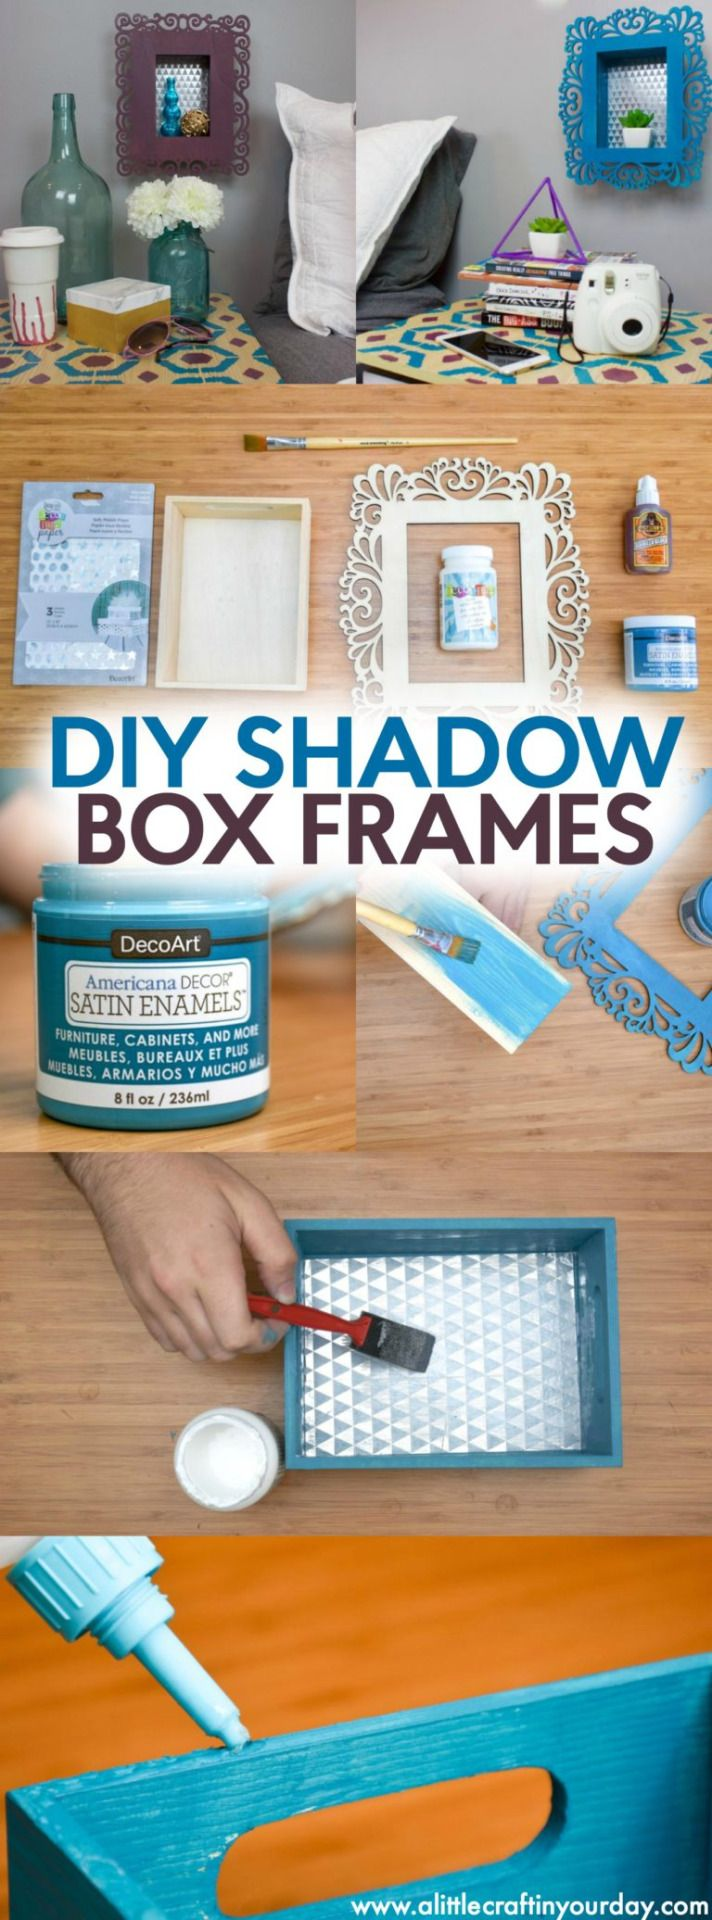 diy shadow box frames | Art Craft Home Projects | Pinterest ...